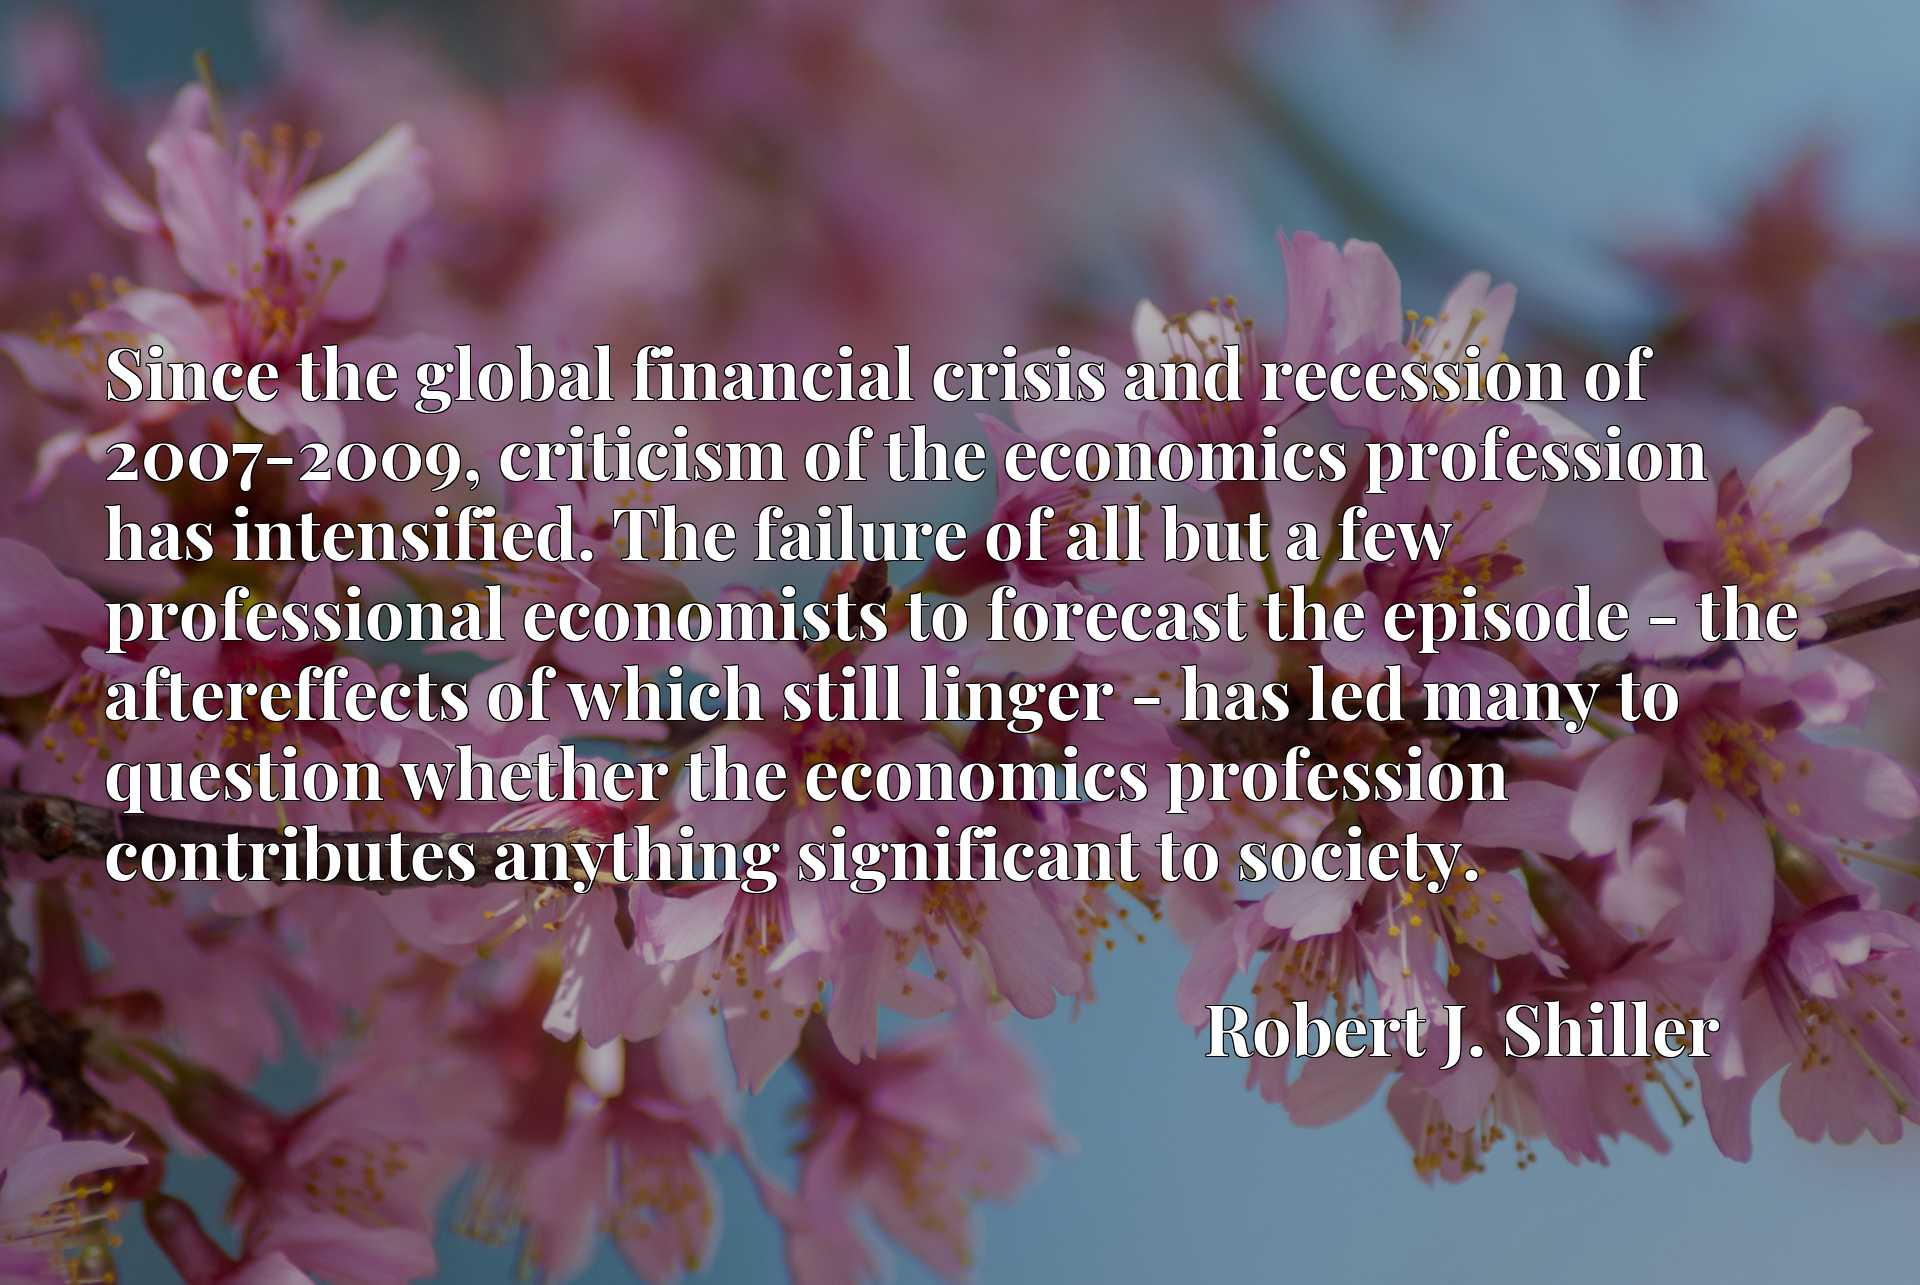 Since the global financial crisis and recession of 2007-2009, criticism of the economics profession has intensified. The failure of all but a few professional economists to forecast the episode - the aftereffects of which still linger - has led many to question whether the economics profession contributes anything significant to society.